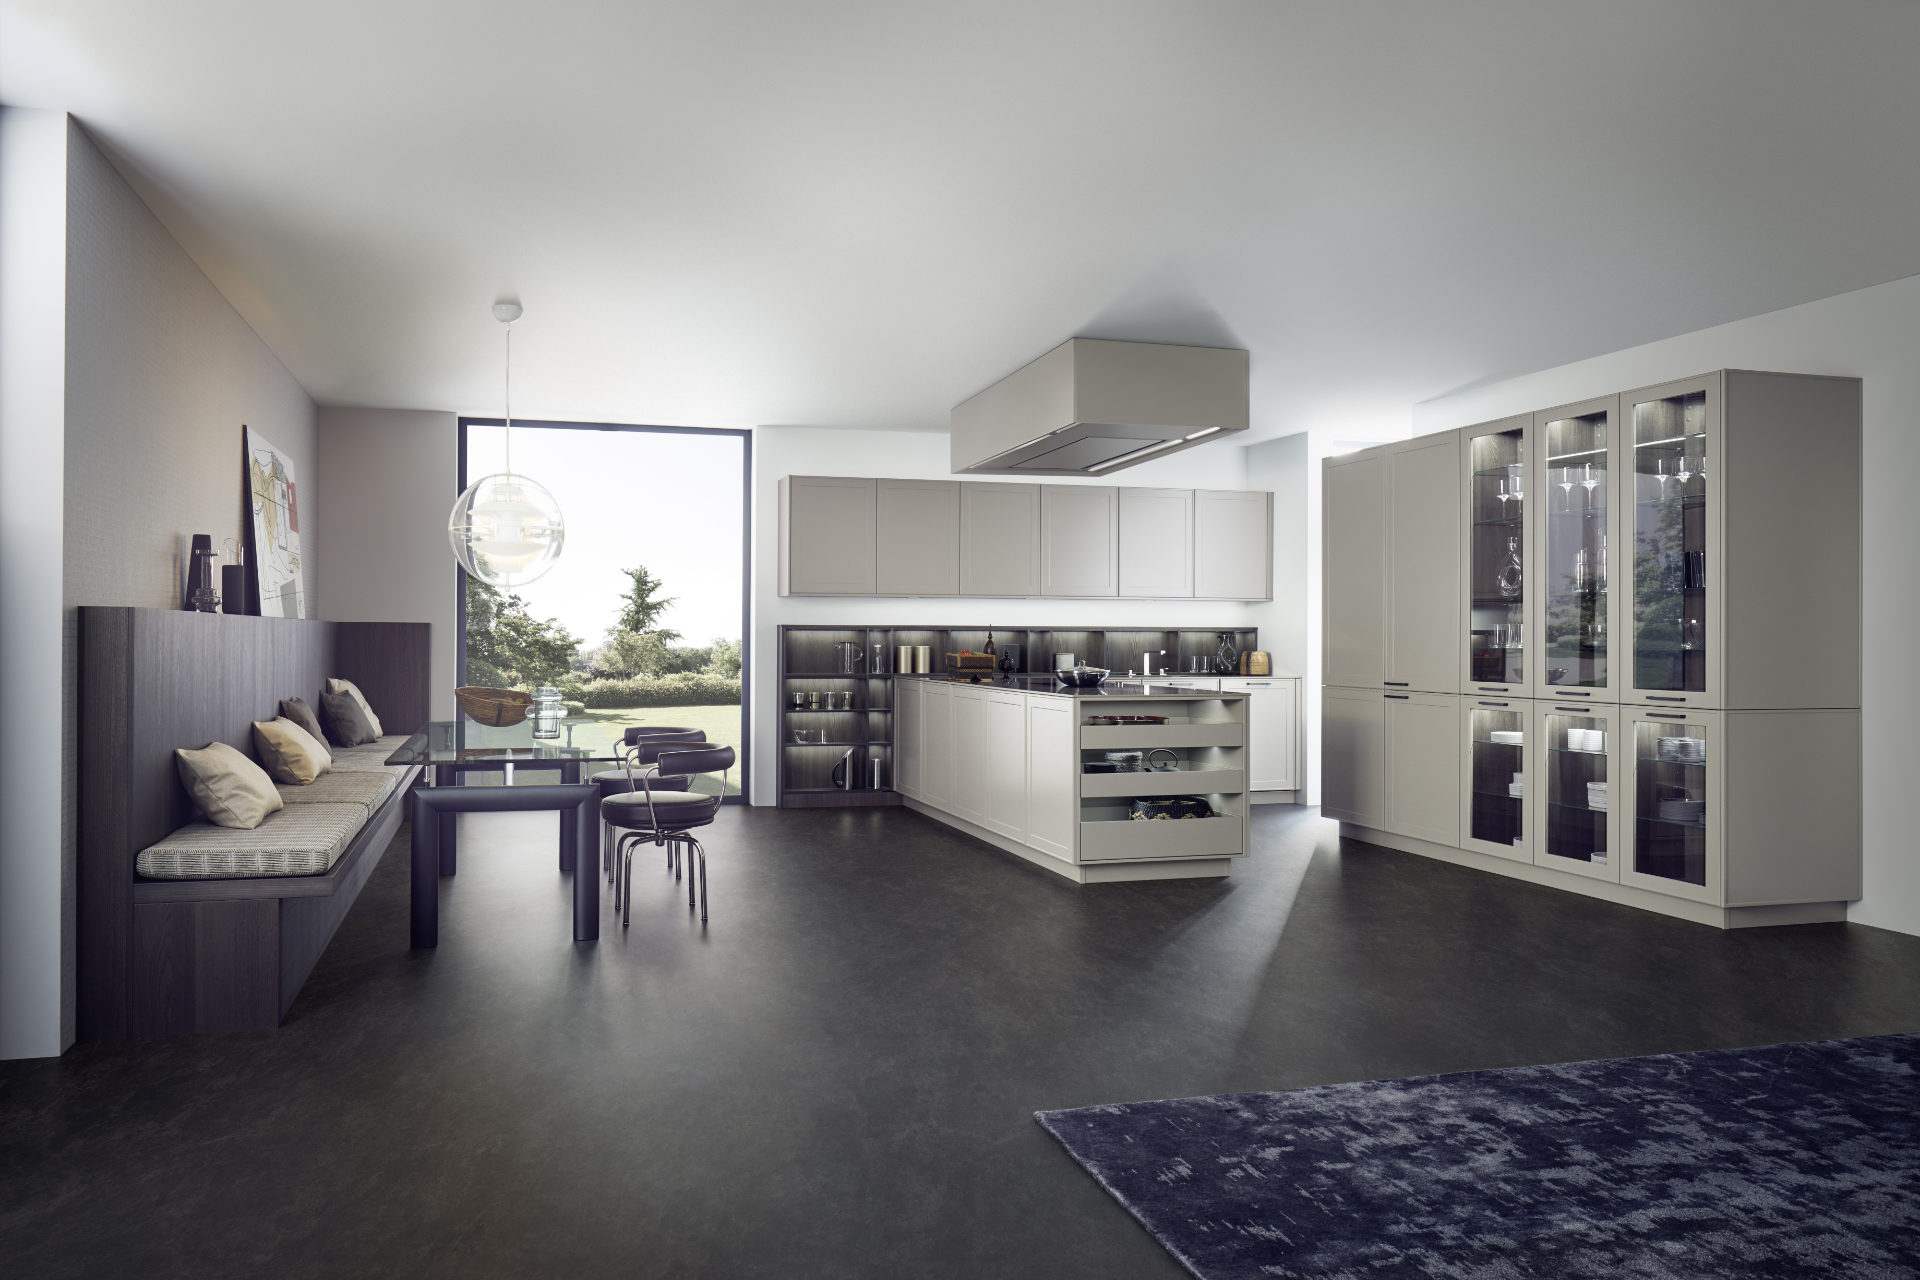 This modern kitchen by German supplier, Leicht features VERVE-FS matt lacquered MDF double frame doors in 'Ombre Naturell Moyenne', paired with TOPOS in 'Bergamo Elm' wood veneer.